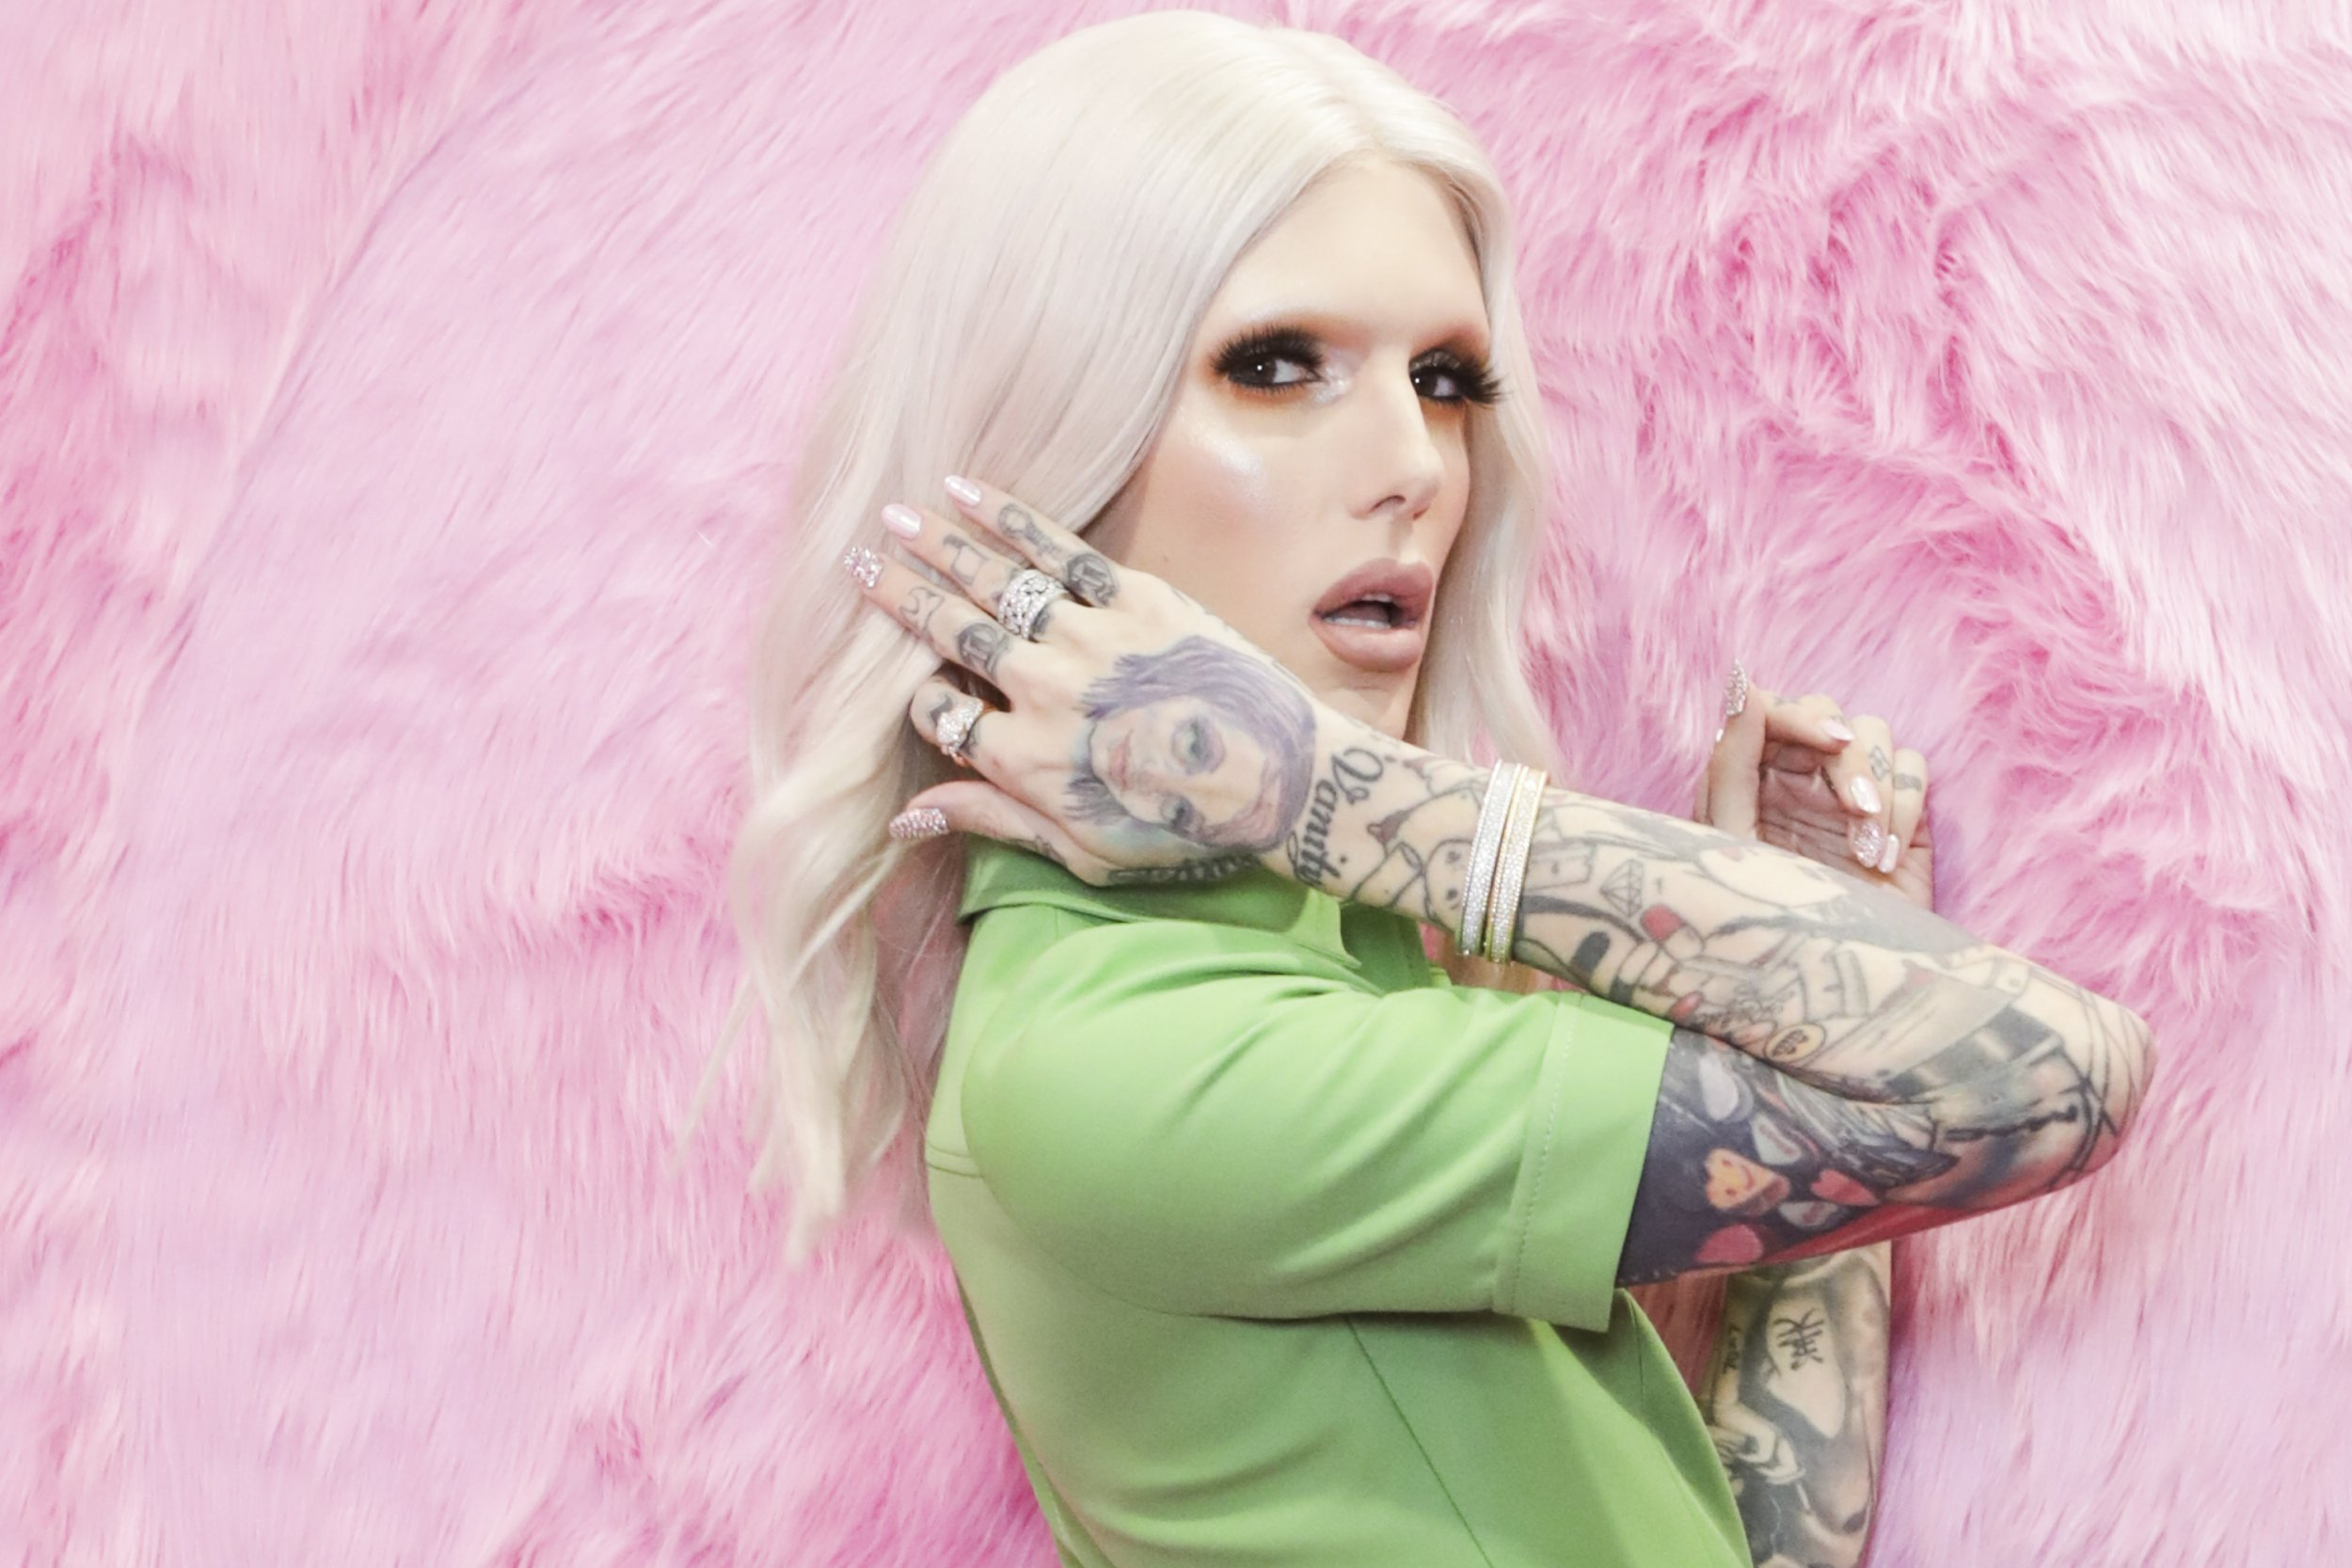 Jeffree Star Tells James Charles' Brother Ian Jeffrey to